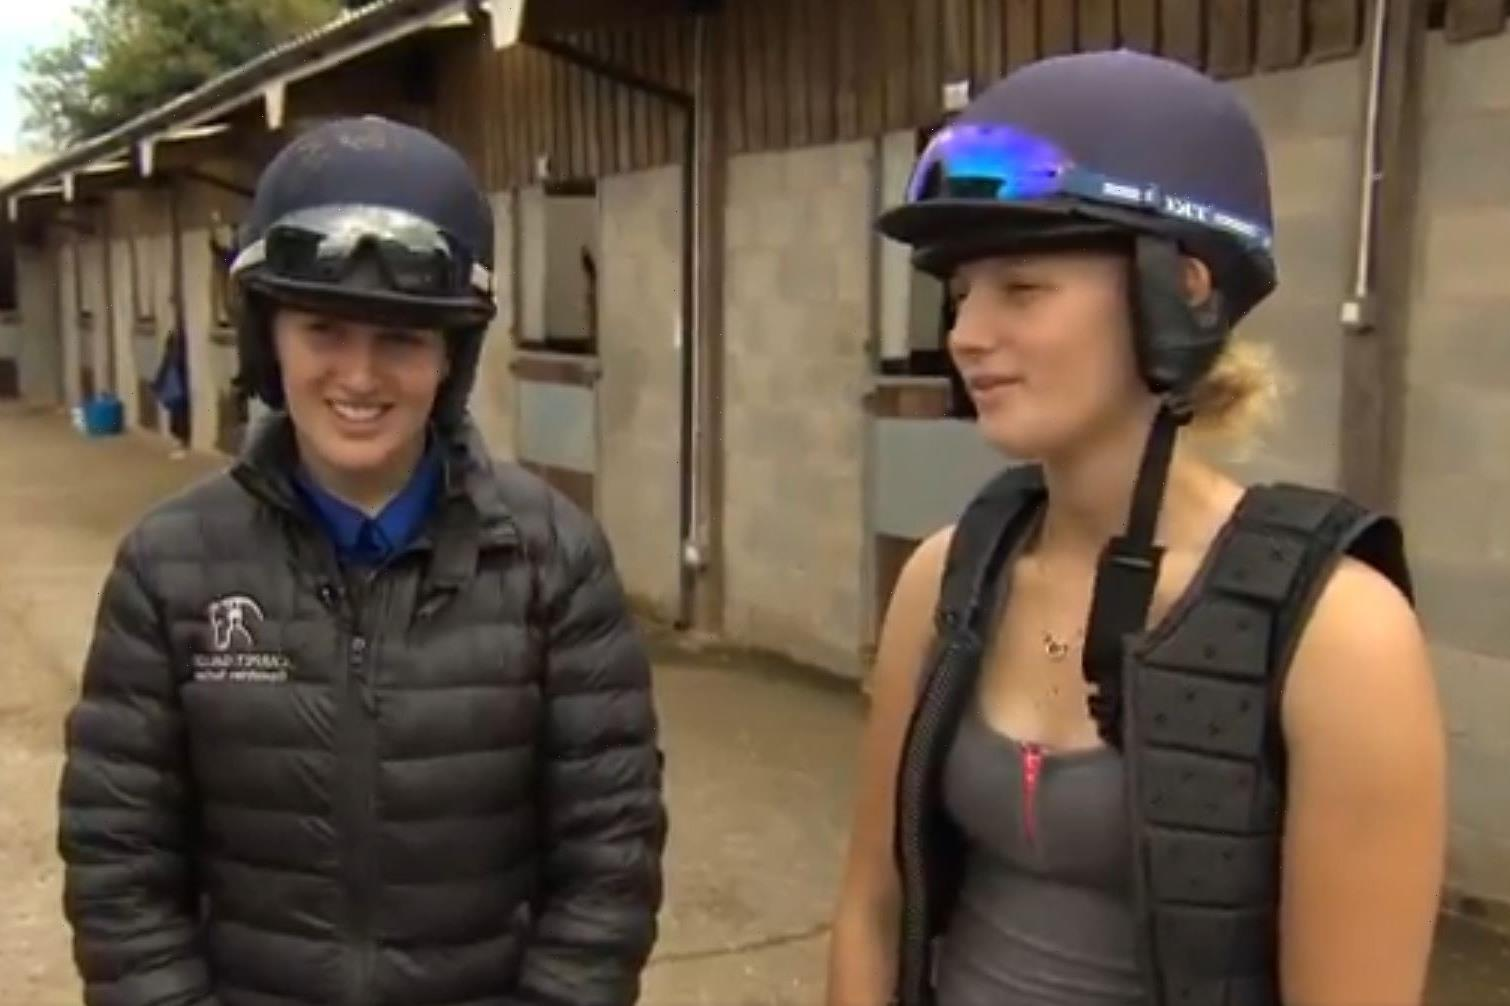 Sister jockeys Abbie and Ella McCain land outrageous 132-1 double on horses trained by proud dad Donald